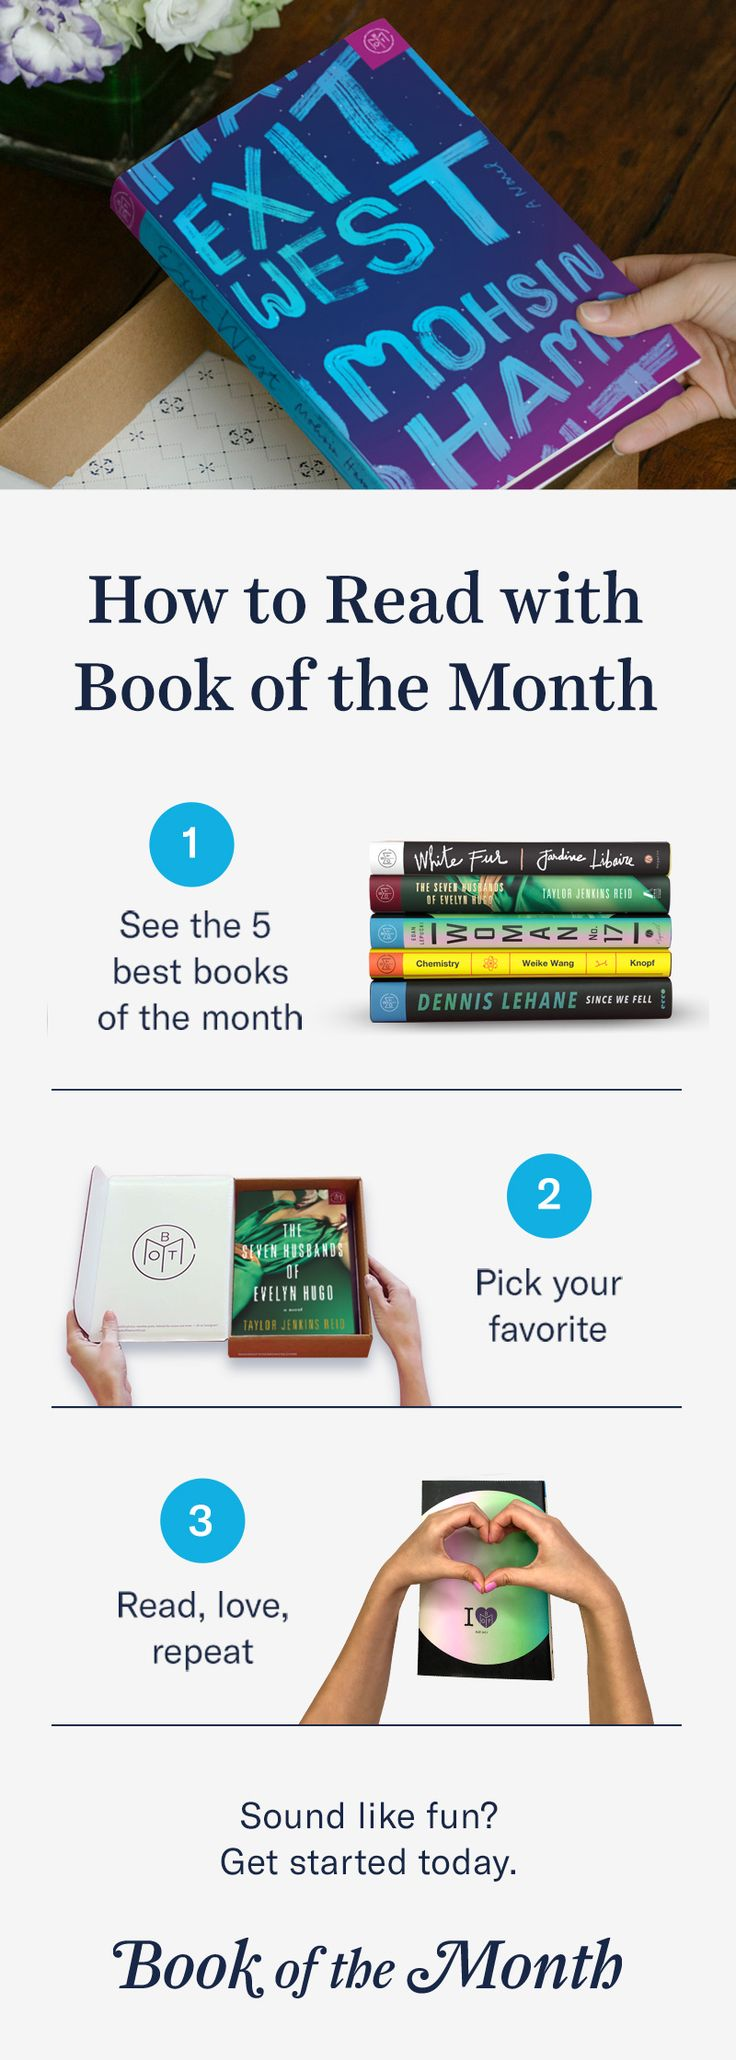 Discover A Better Way To Read Head To Bookofthemonth To Learn More And